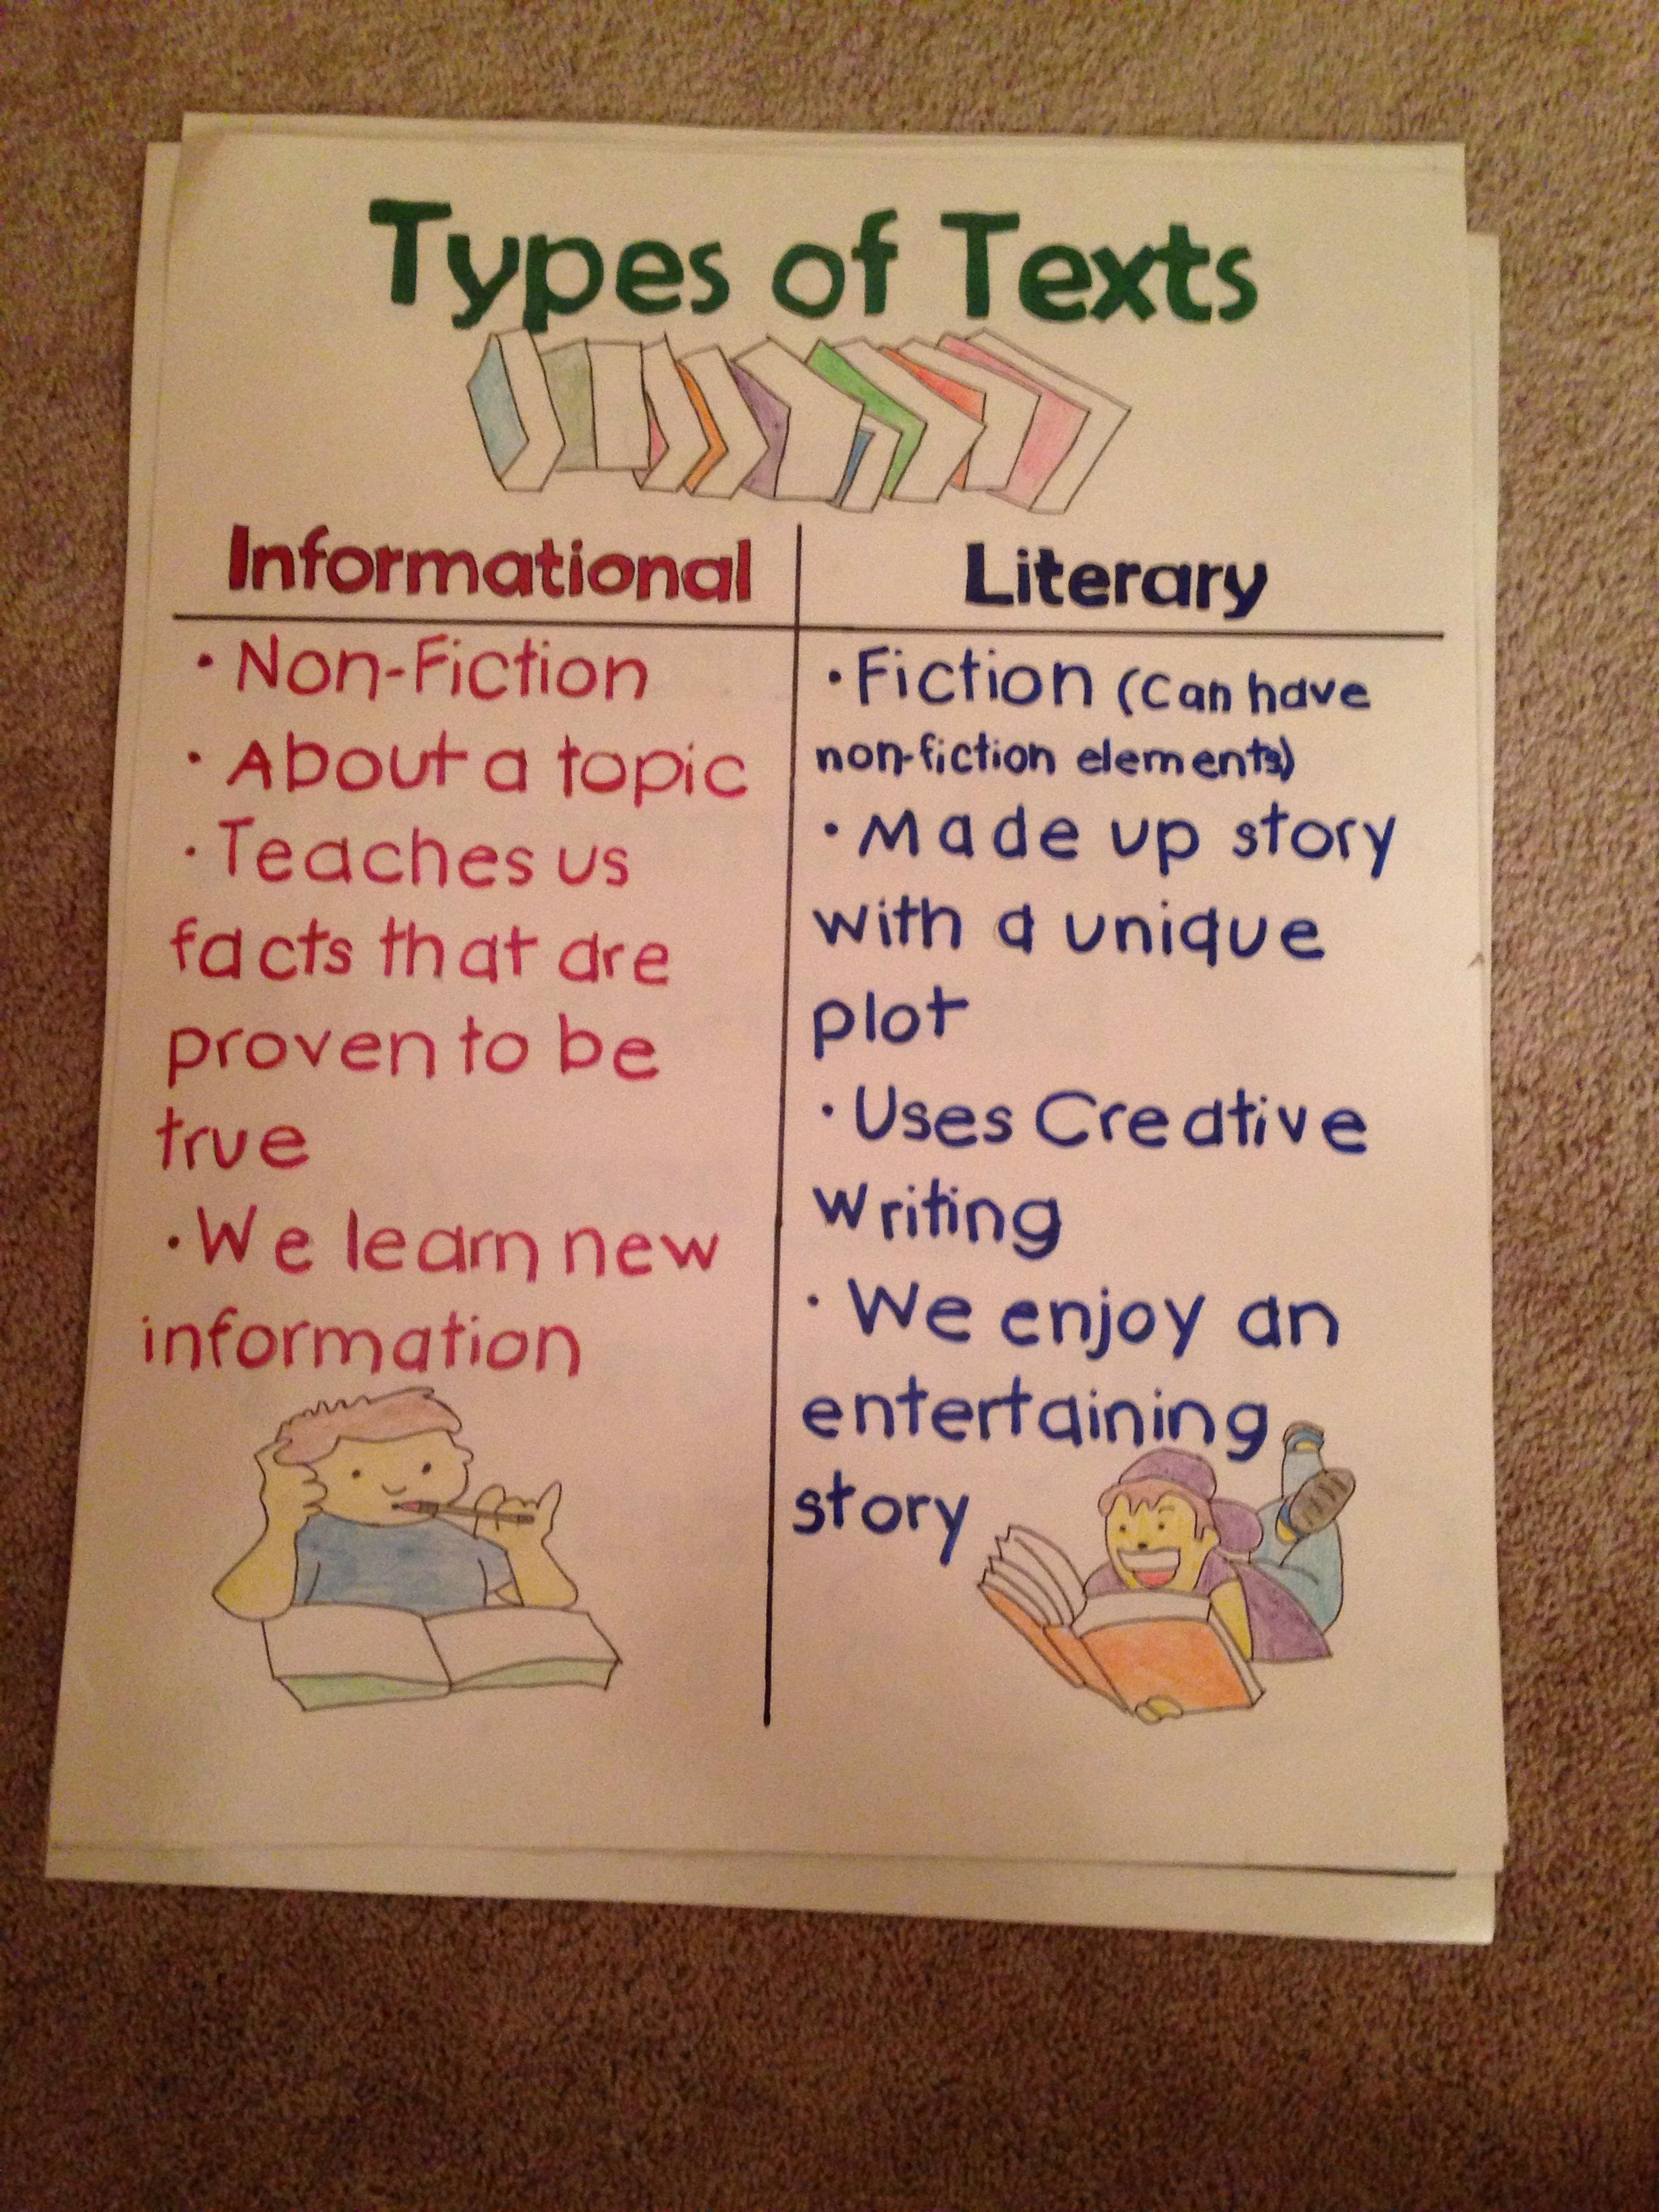 types of text poster featuring informational and literary texts types of text poster featuring informational and literary texts